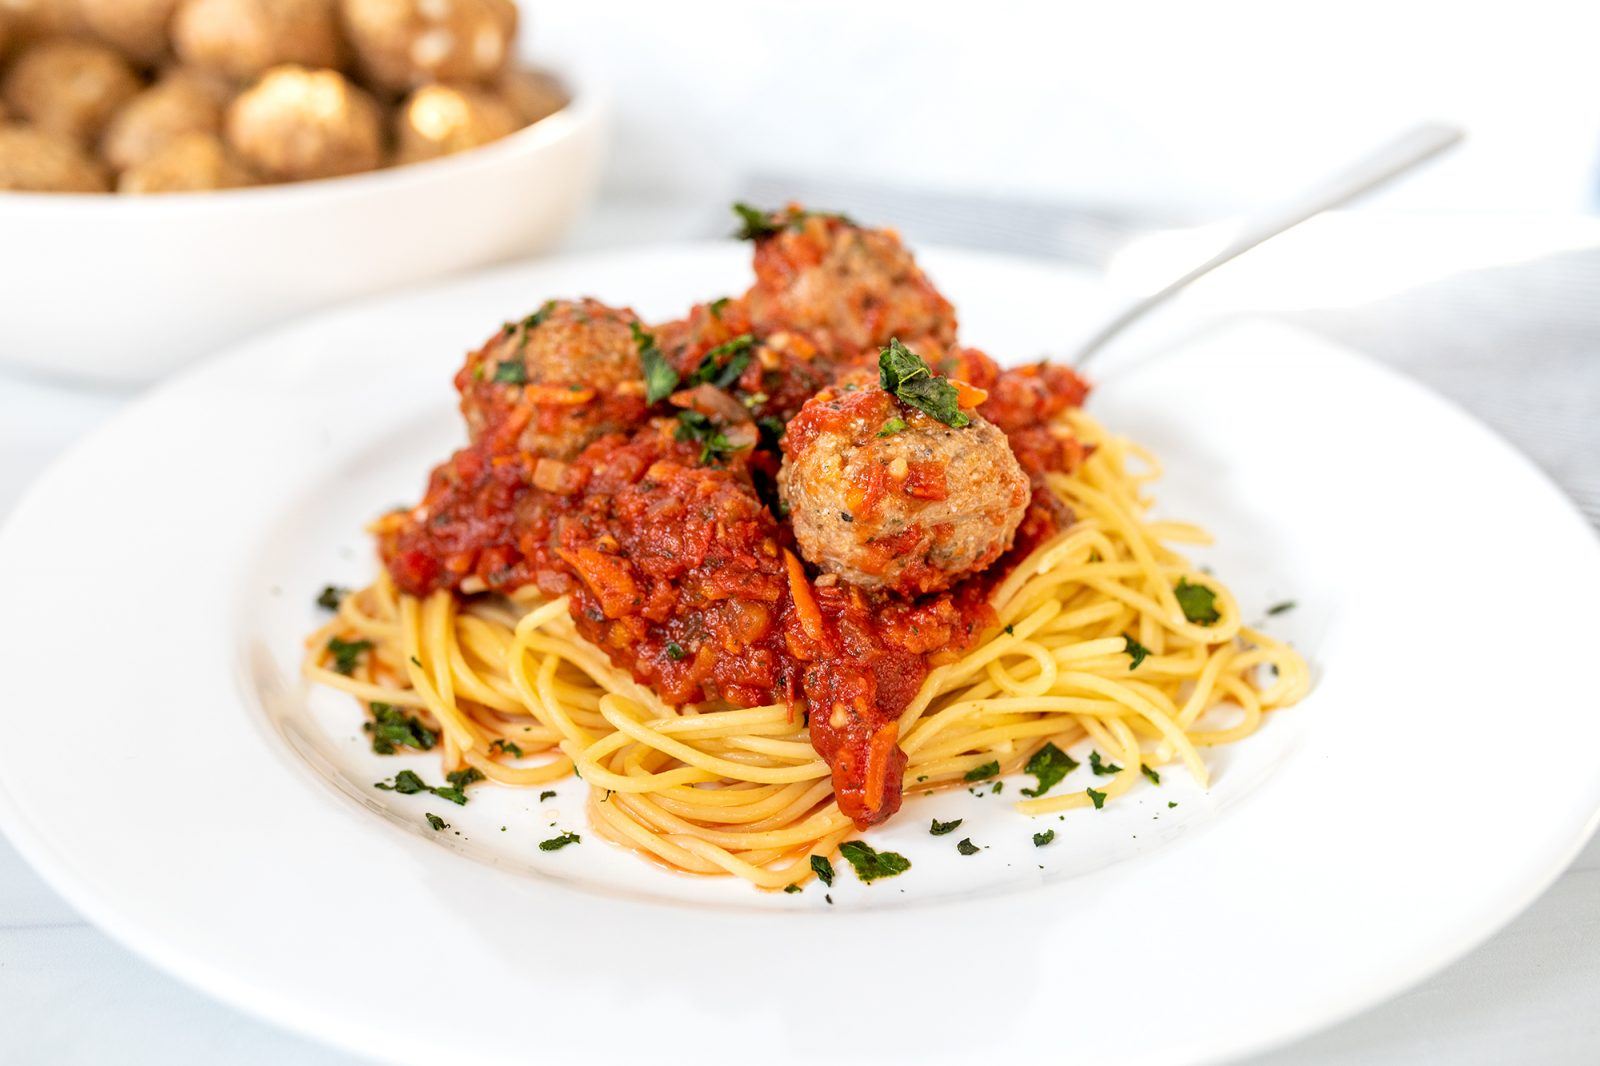 plate of spaghetti with sauce and meatballs